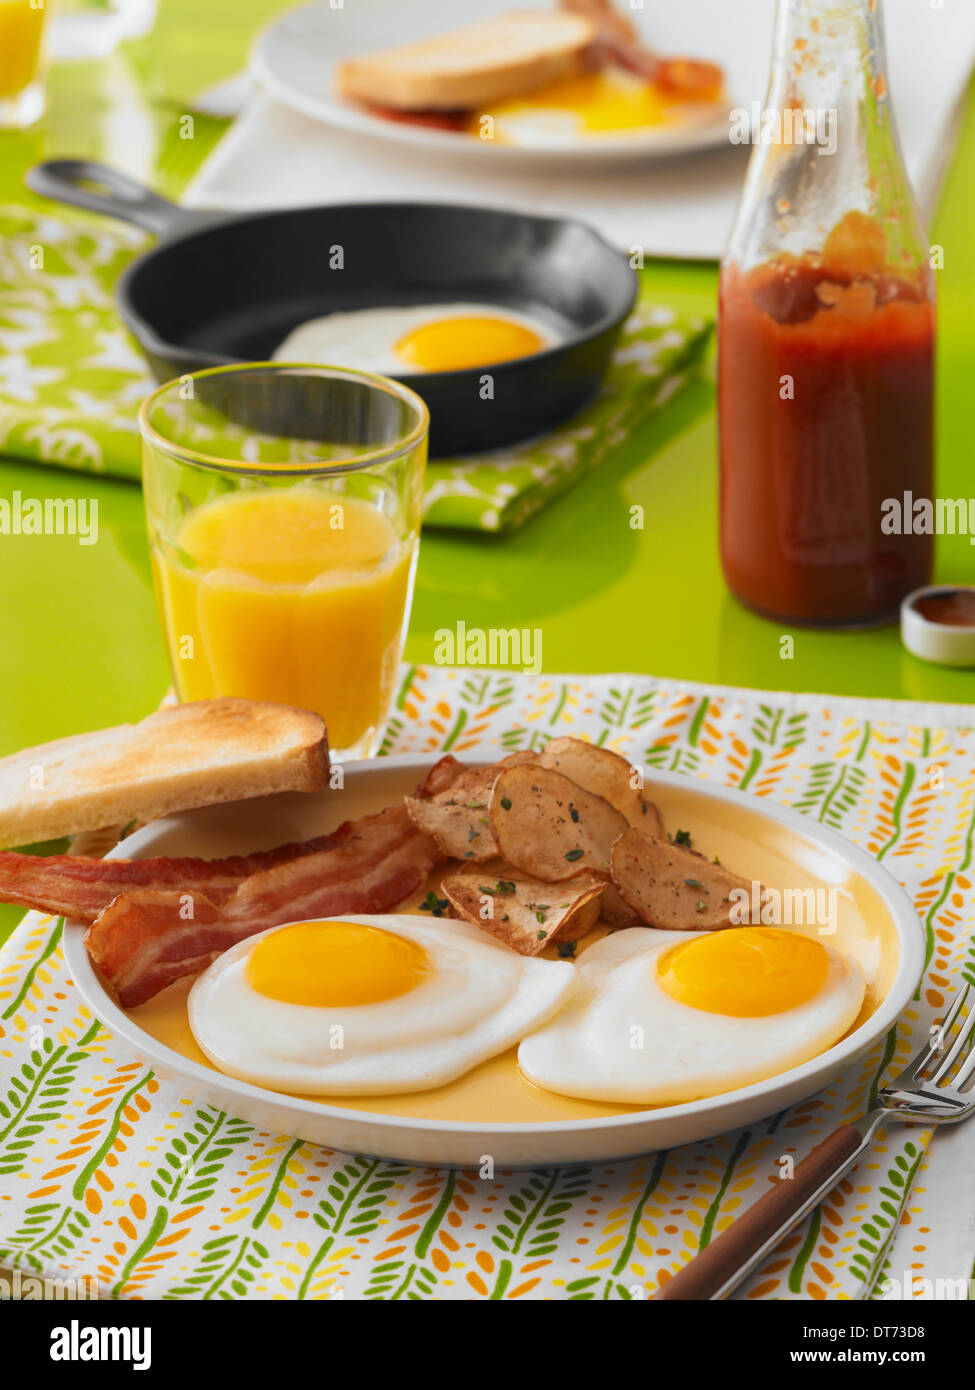 A breakfast scene with sunny side up fried eggs, bacon, toast, breakfast potatoes, and a glass of orange juice - Stock Image